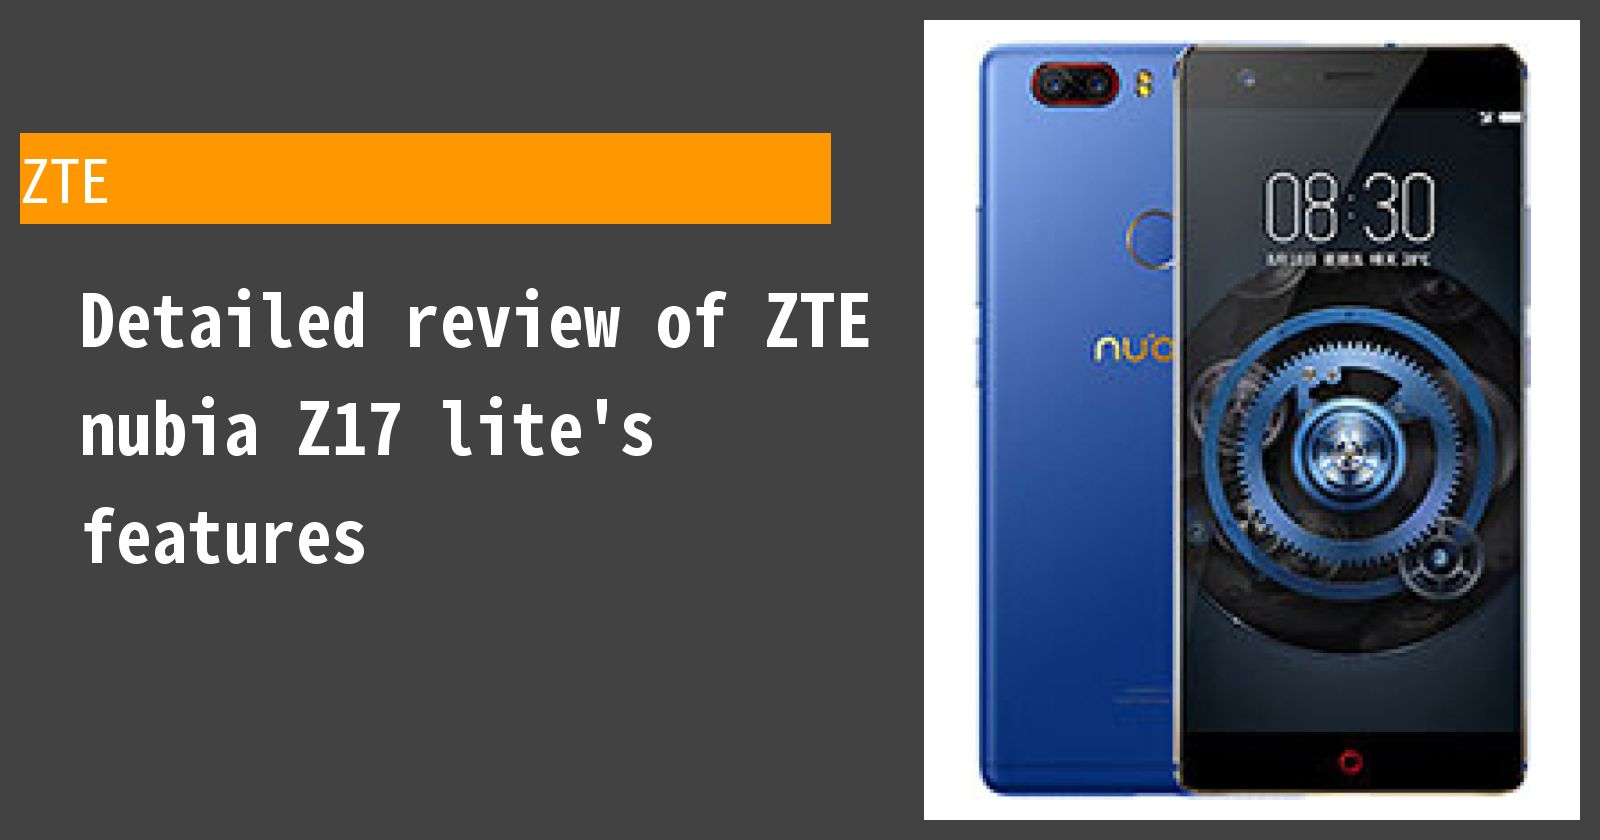 Detailed review of ZTE nubia Z17 lite's features